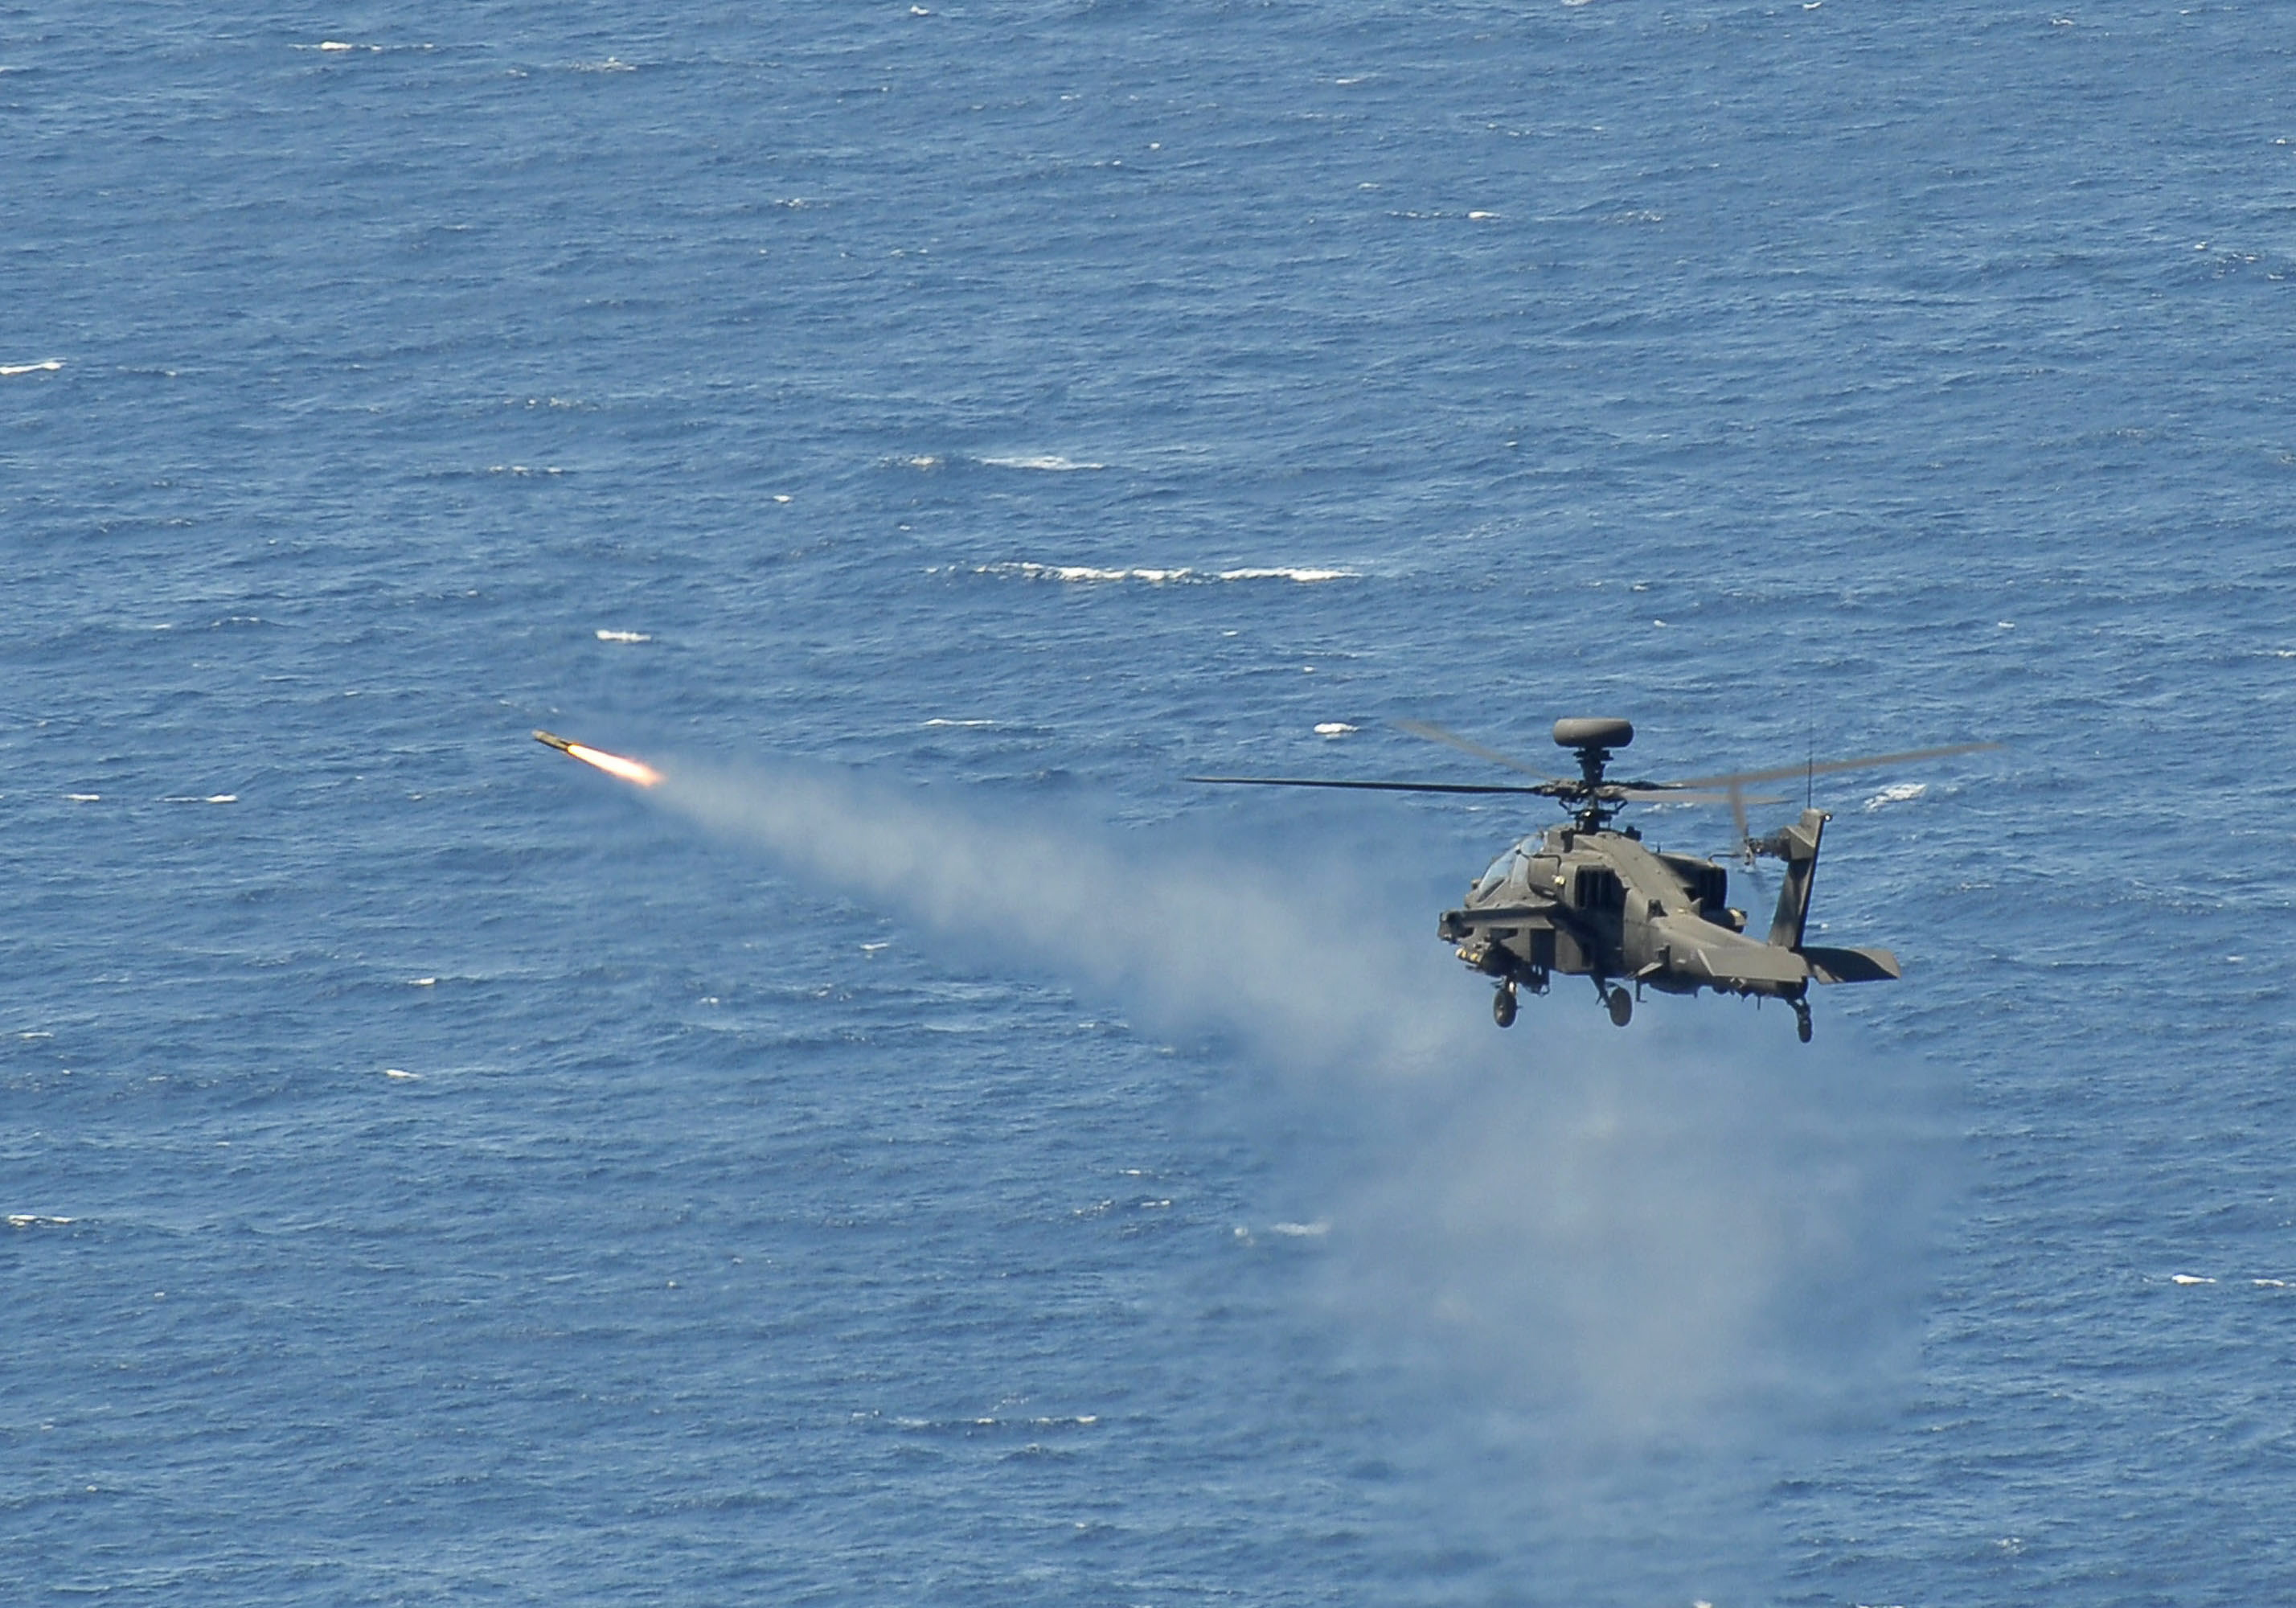 File:Army Apache Helicopter Fires Hellfire Missile During ...